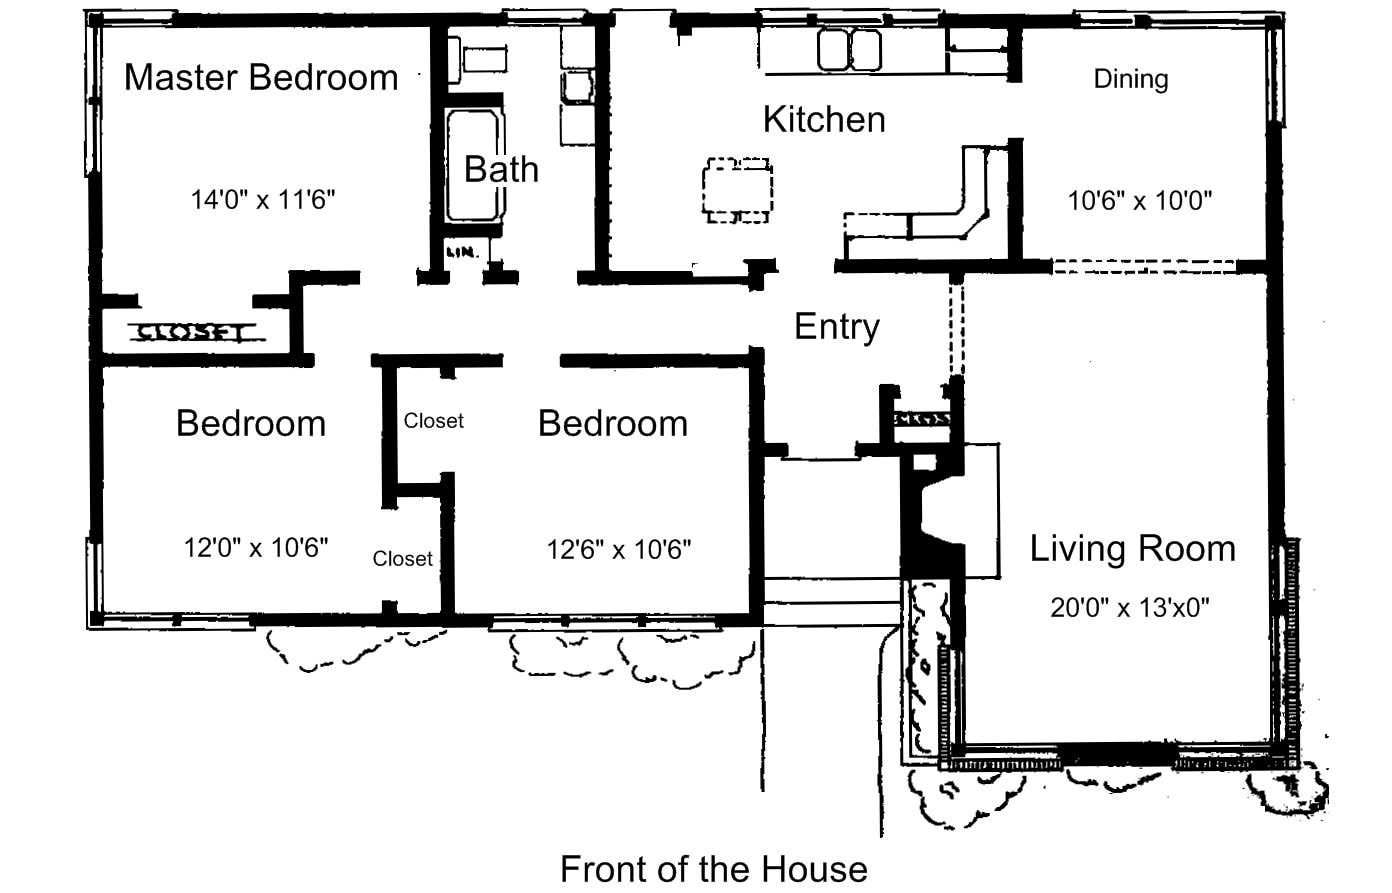 Free floor plans for small houses small house plans smallest house and tiny houses Free house plans